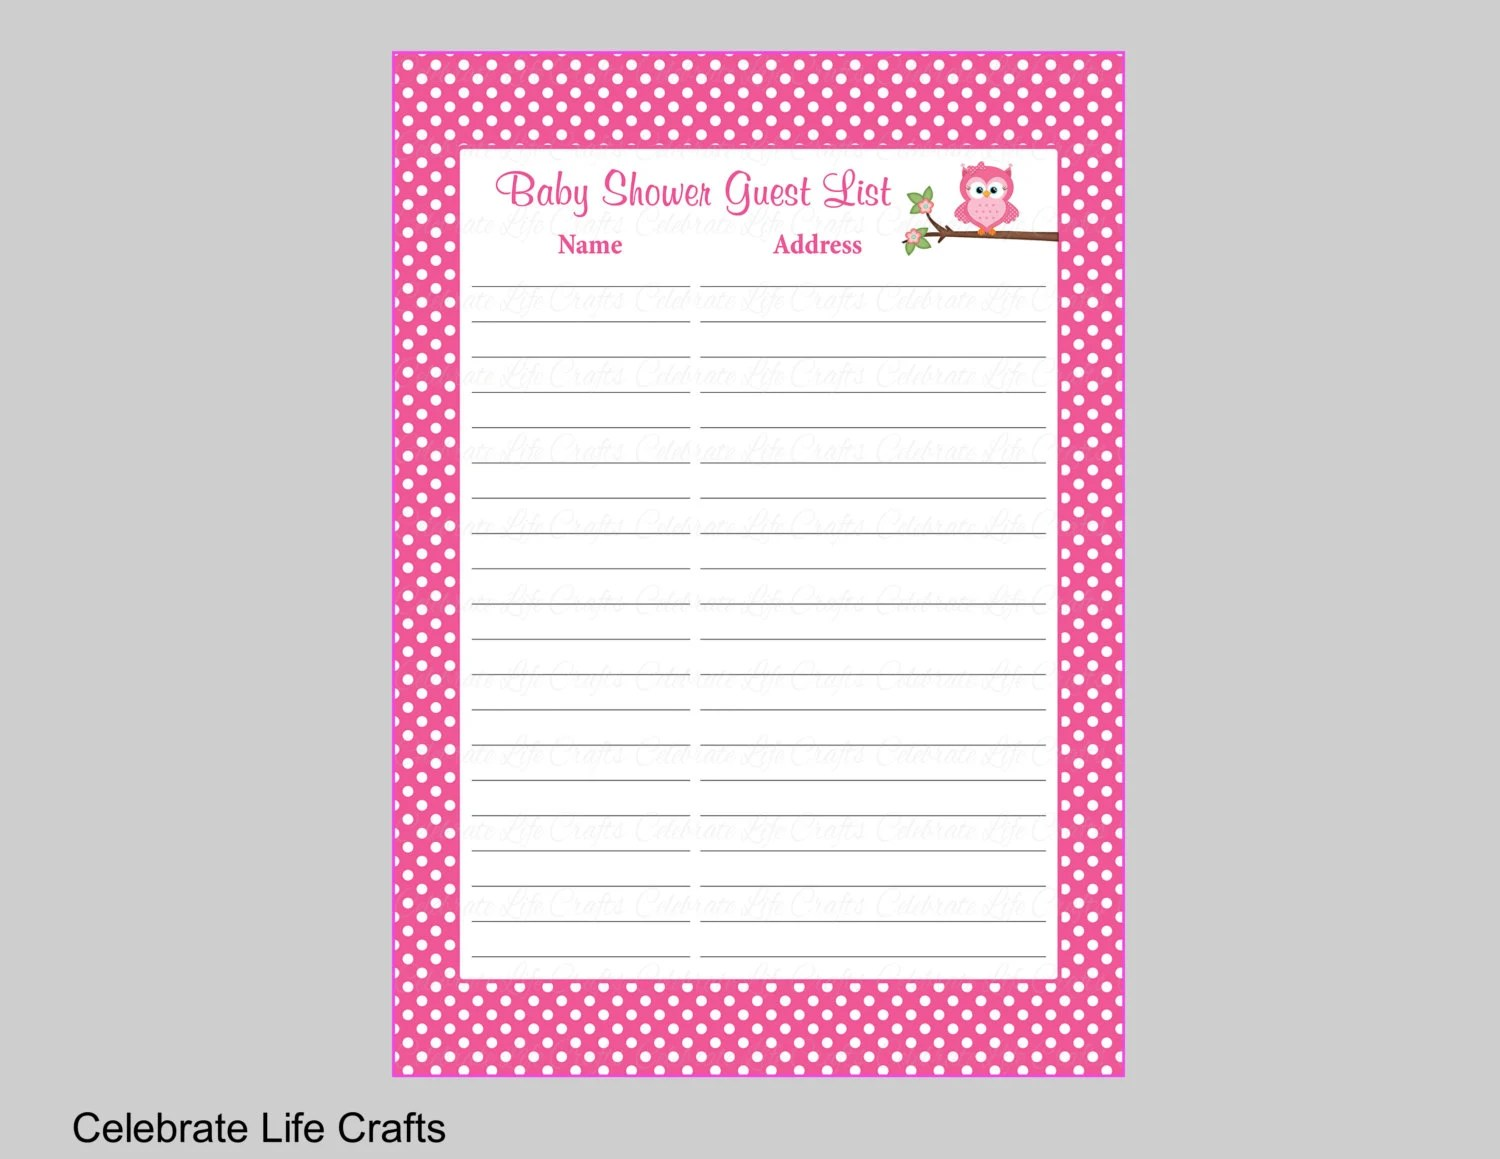 Owl Baby Shower Guest List Printable Sign In Sheet With